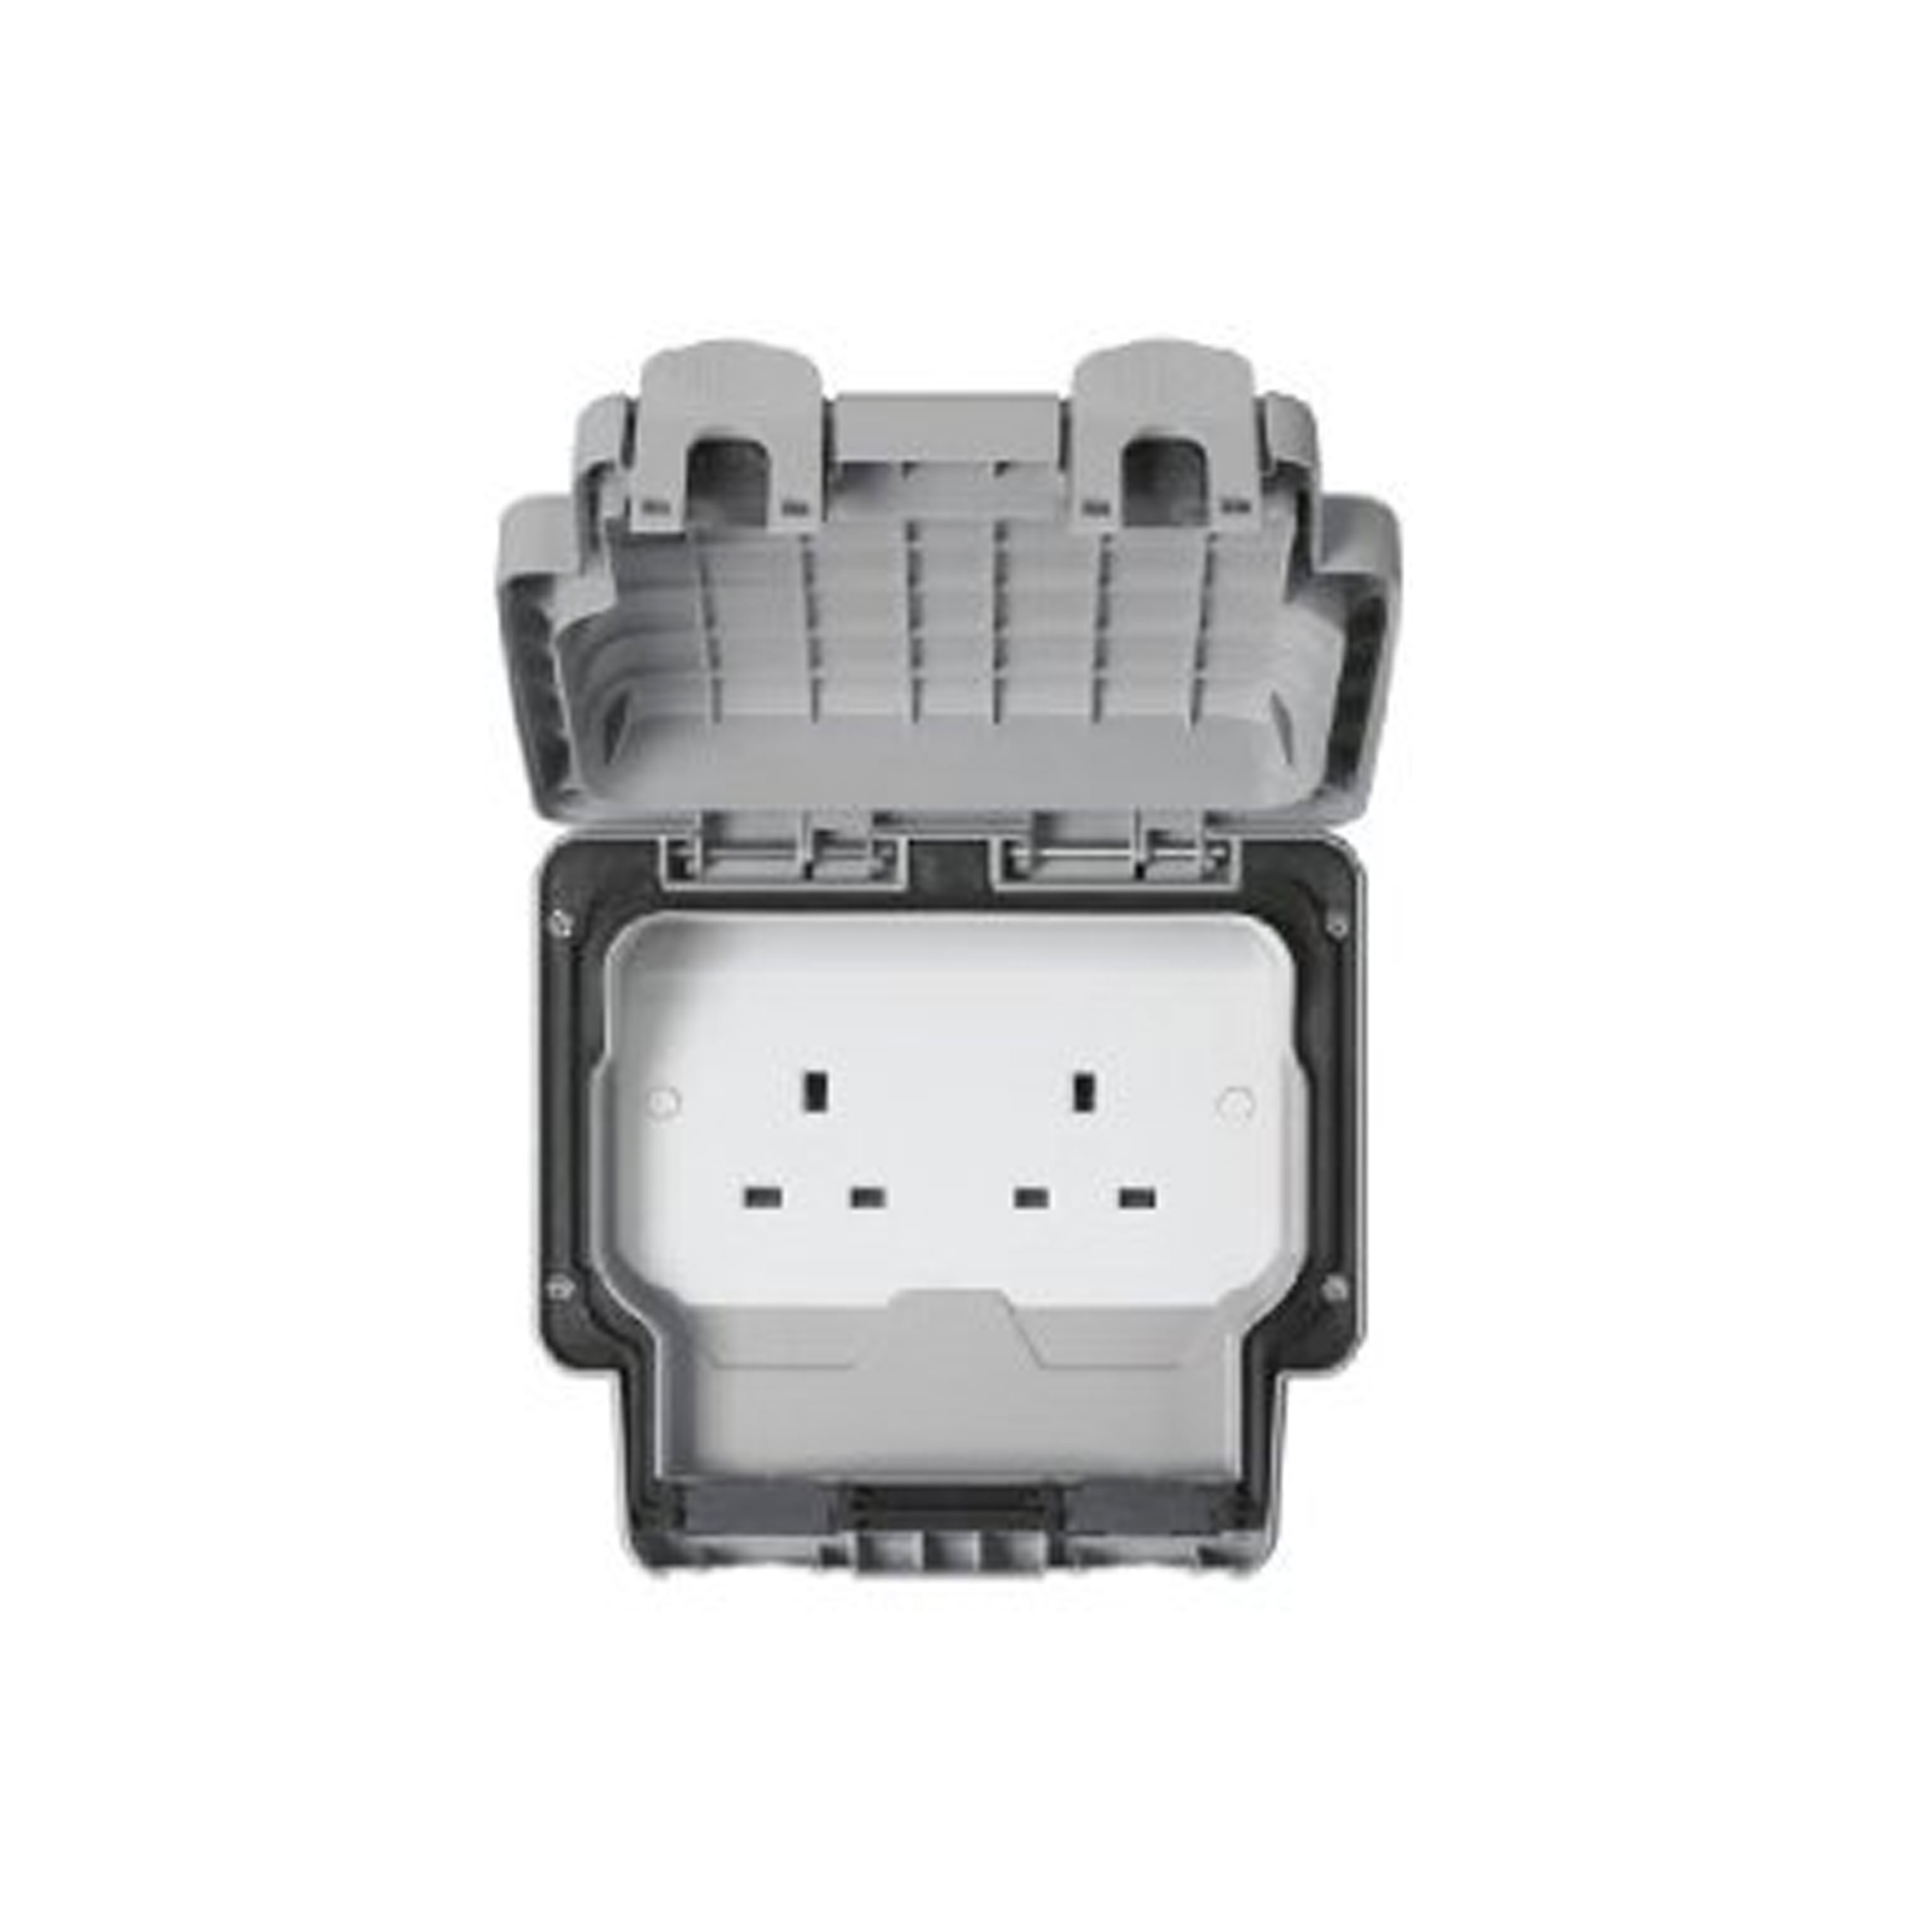 IP66 SOCKET 2GANG UNSWITCHED